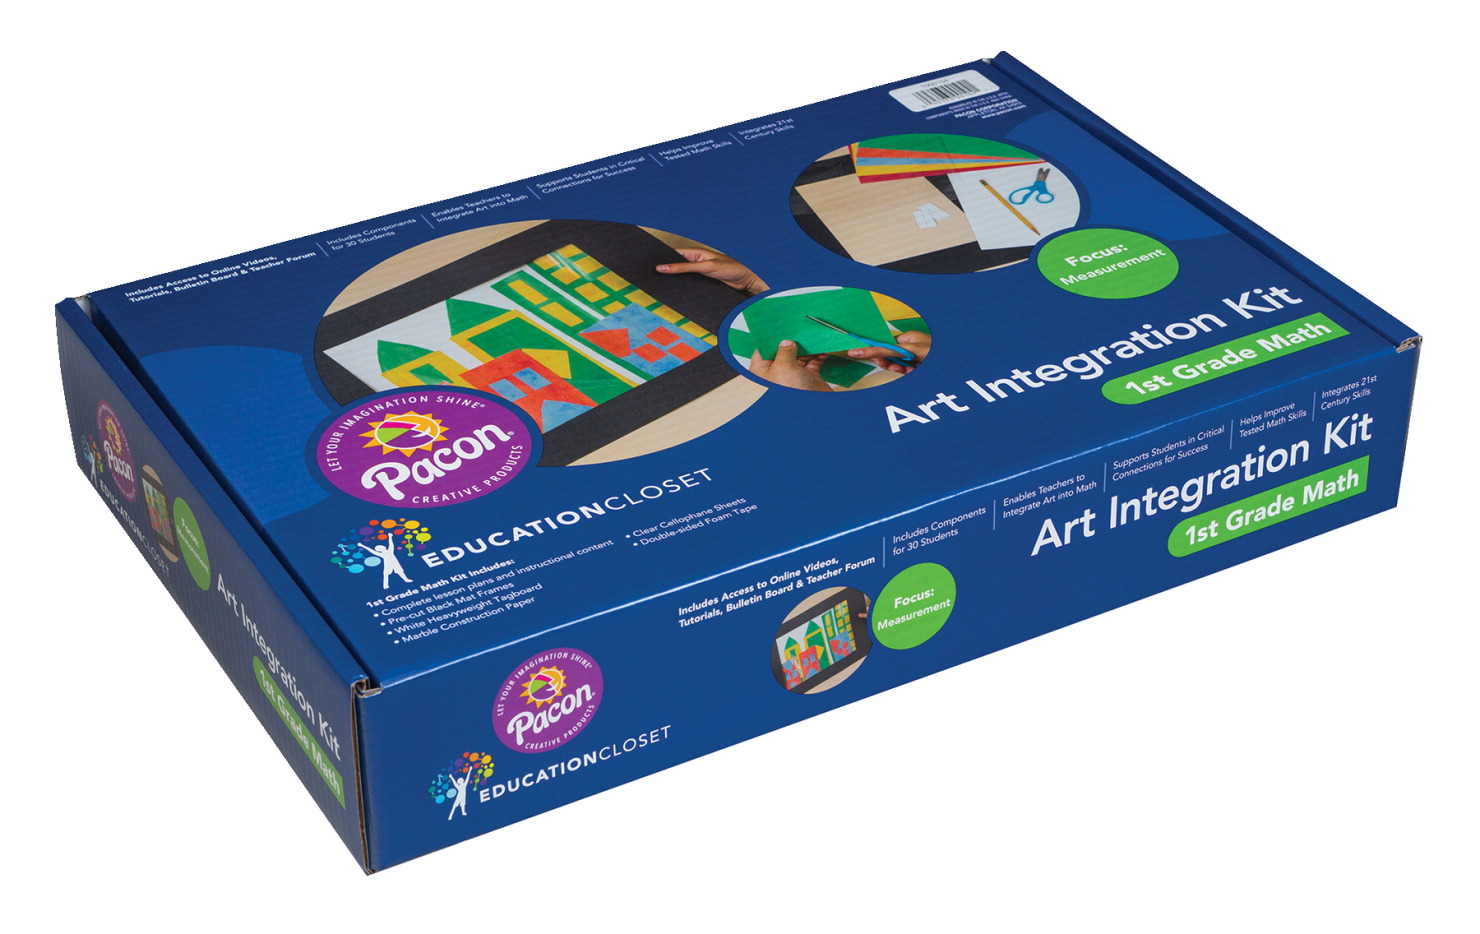 Pacon Art Integration Lesson Kit, First Grade Math